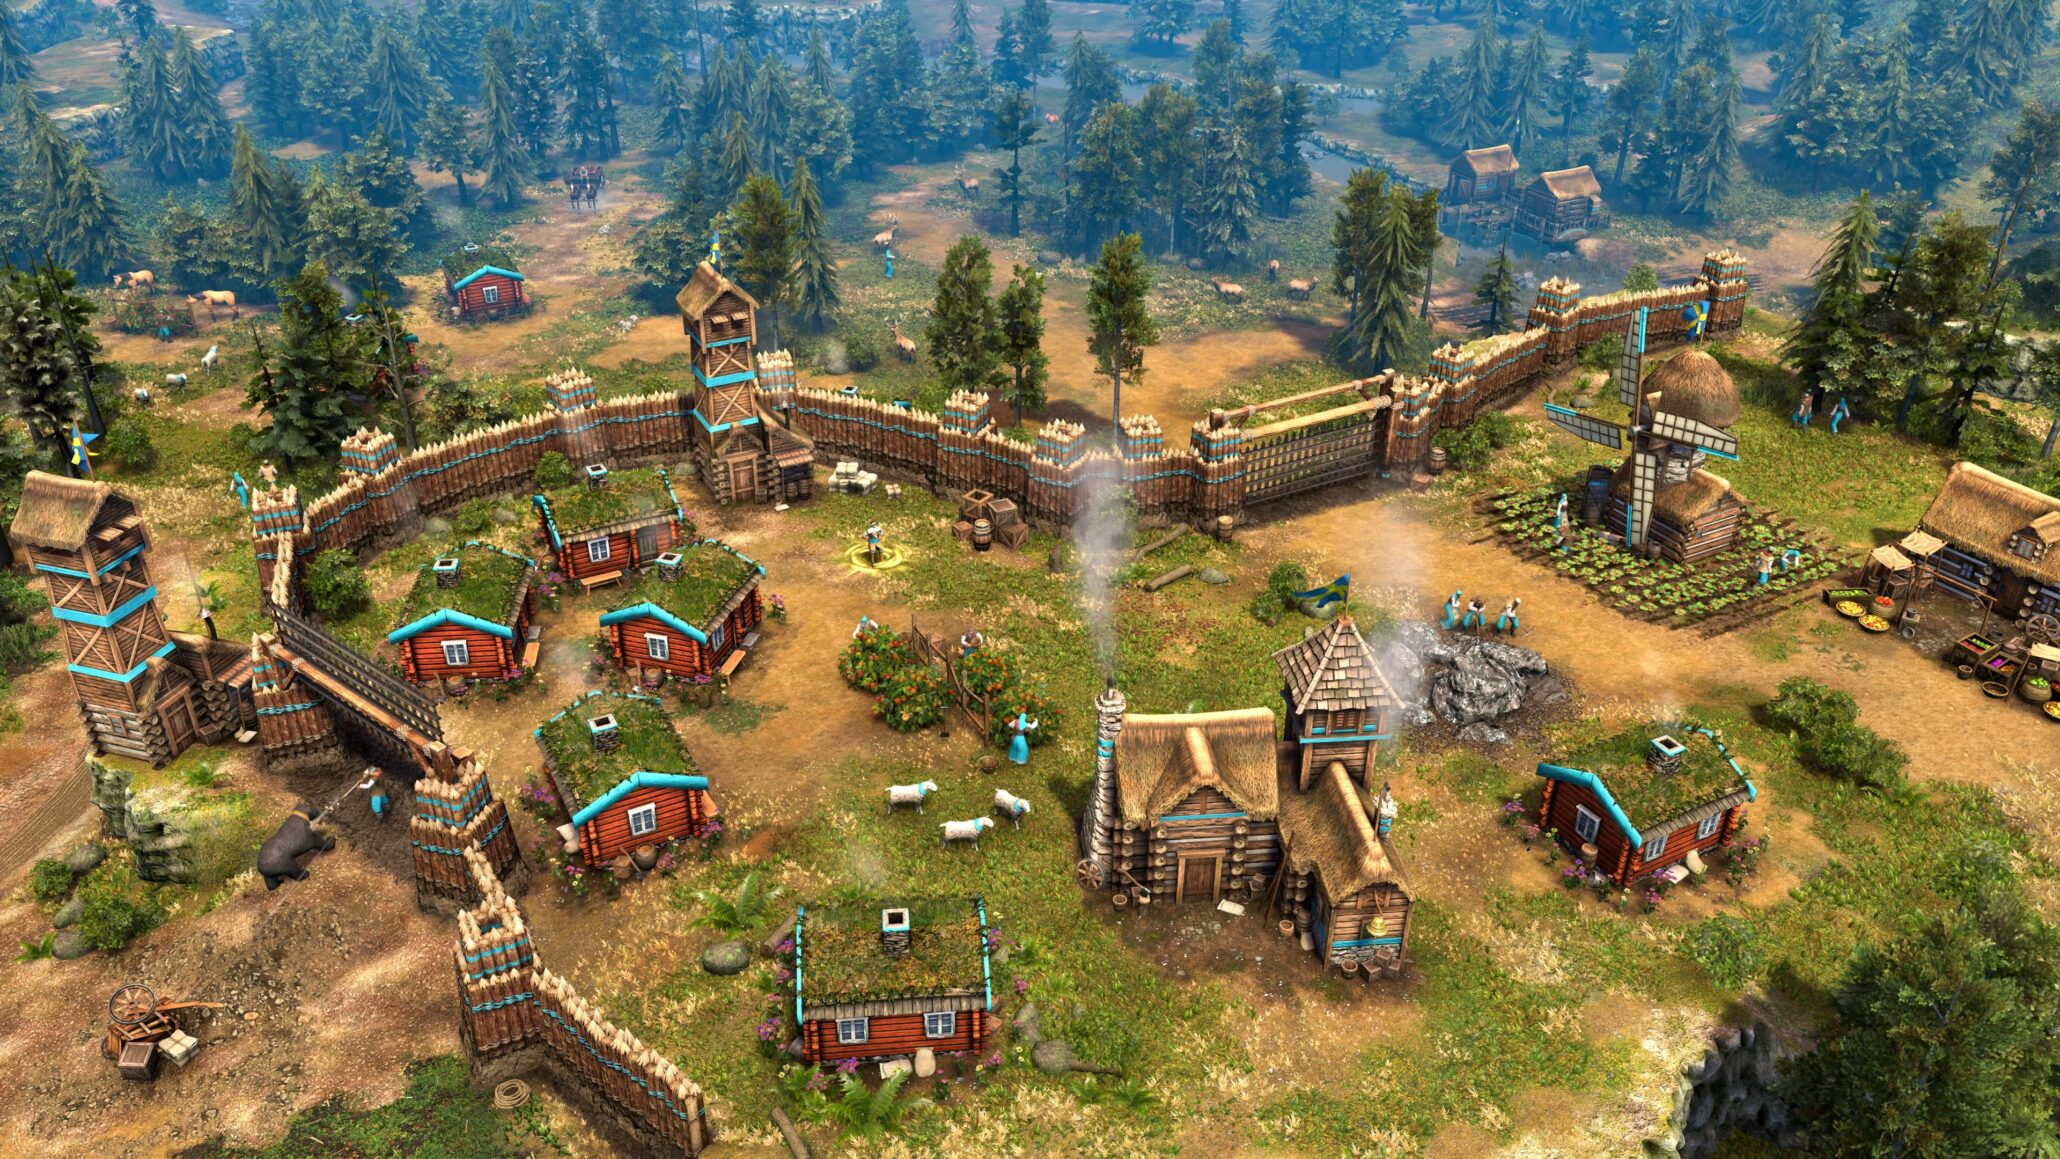 age-of-empires-iii-definitive-edition-review-04-asset-9